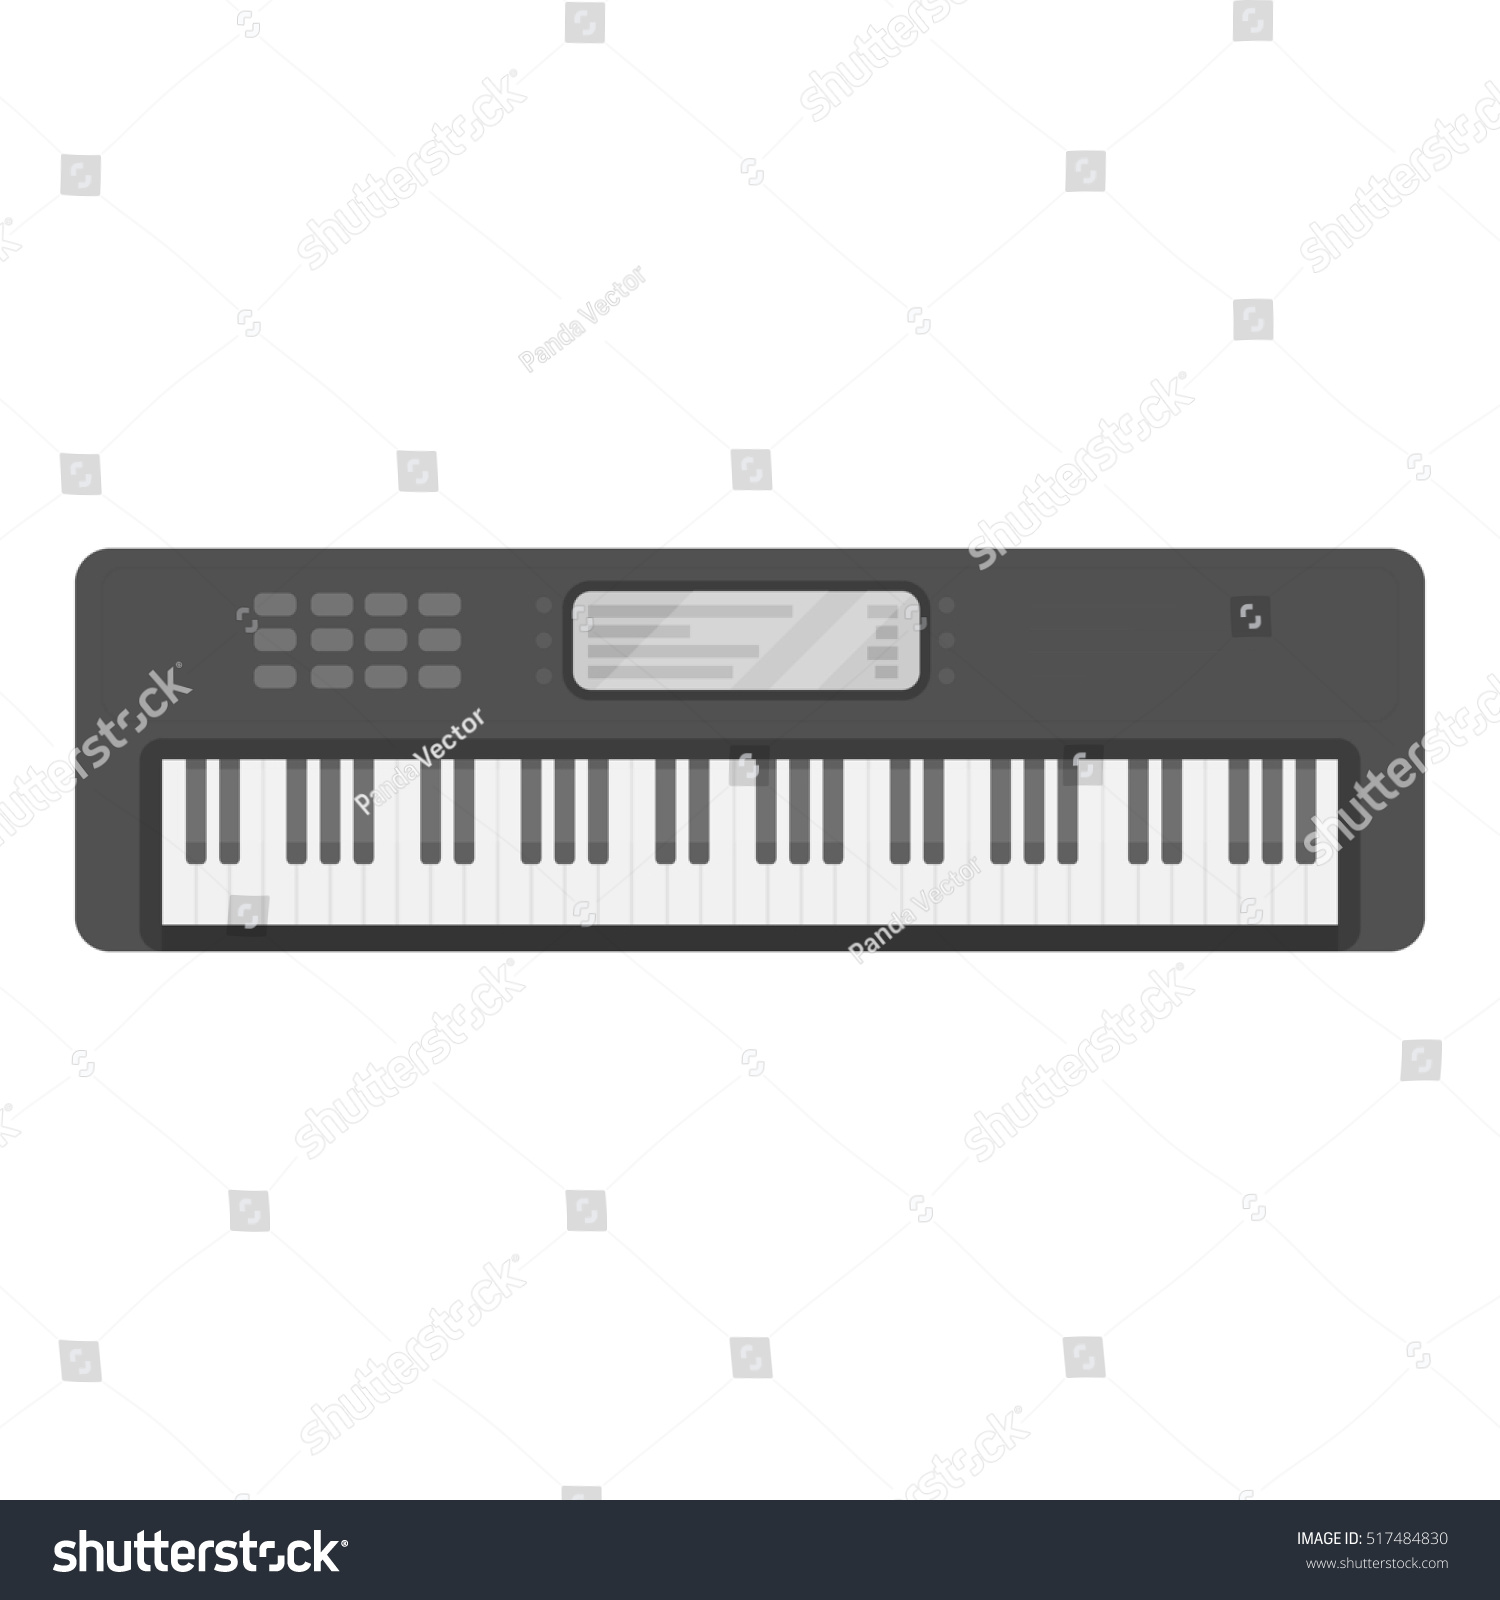 Electronic Synthesizer Piano Keyboard Isolated 3d Rendering Ez Canvas